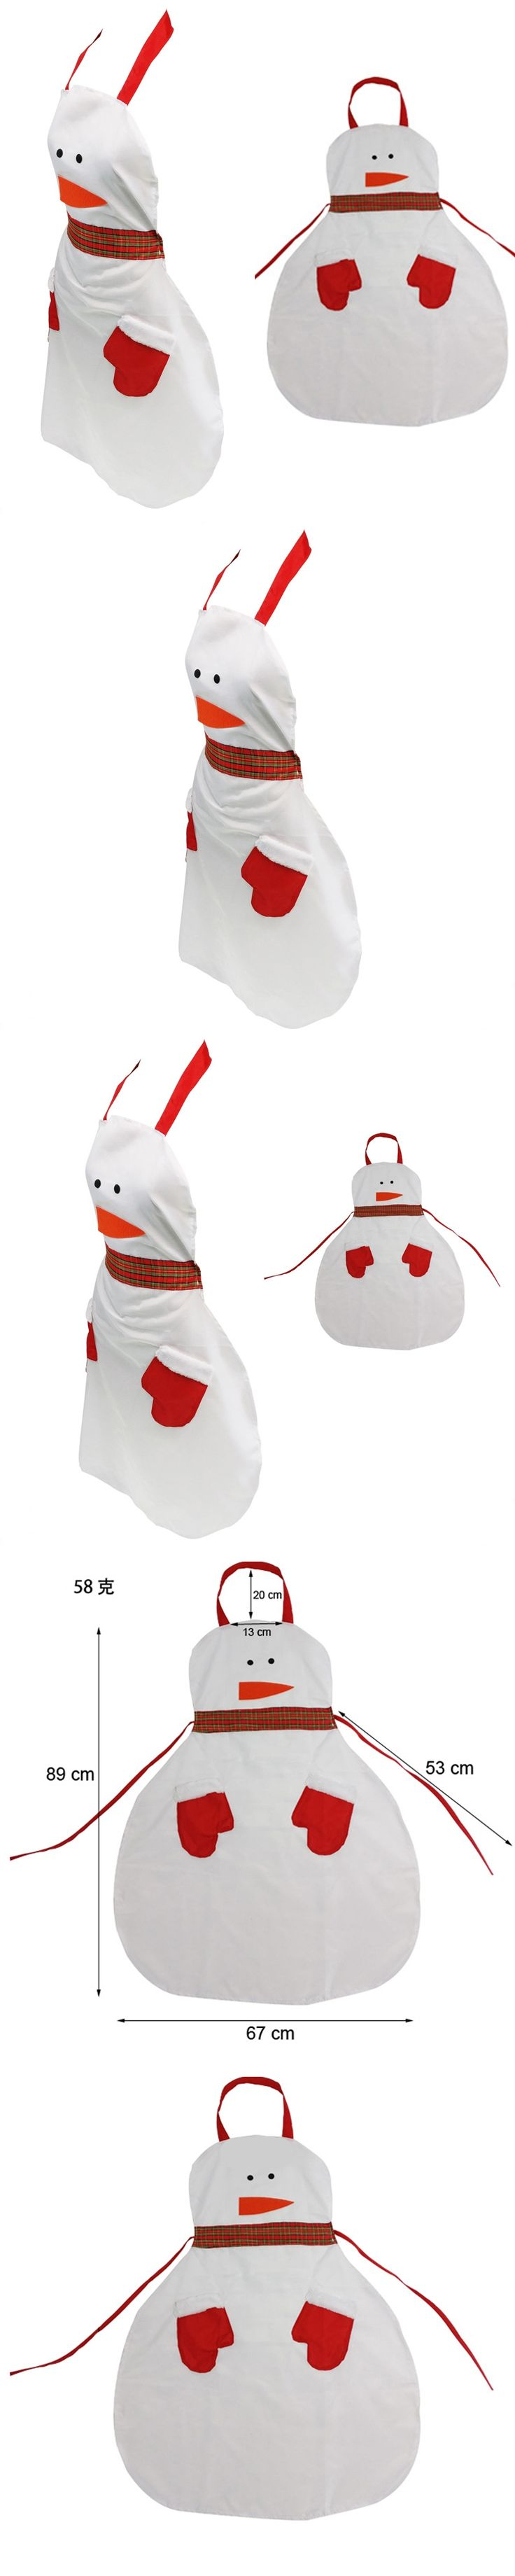 2017 New Christmas Apron Decoration for home for women Snowman Santa Spoof Sexy Novelty Party men Kitchen Cooking BBQ Bar Funny